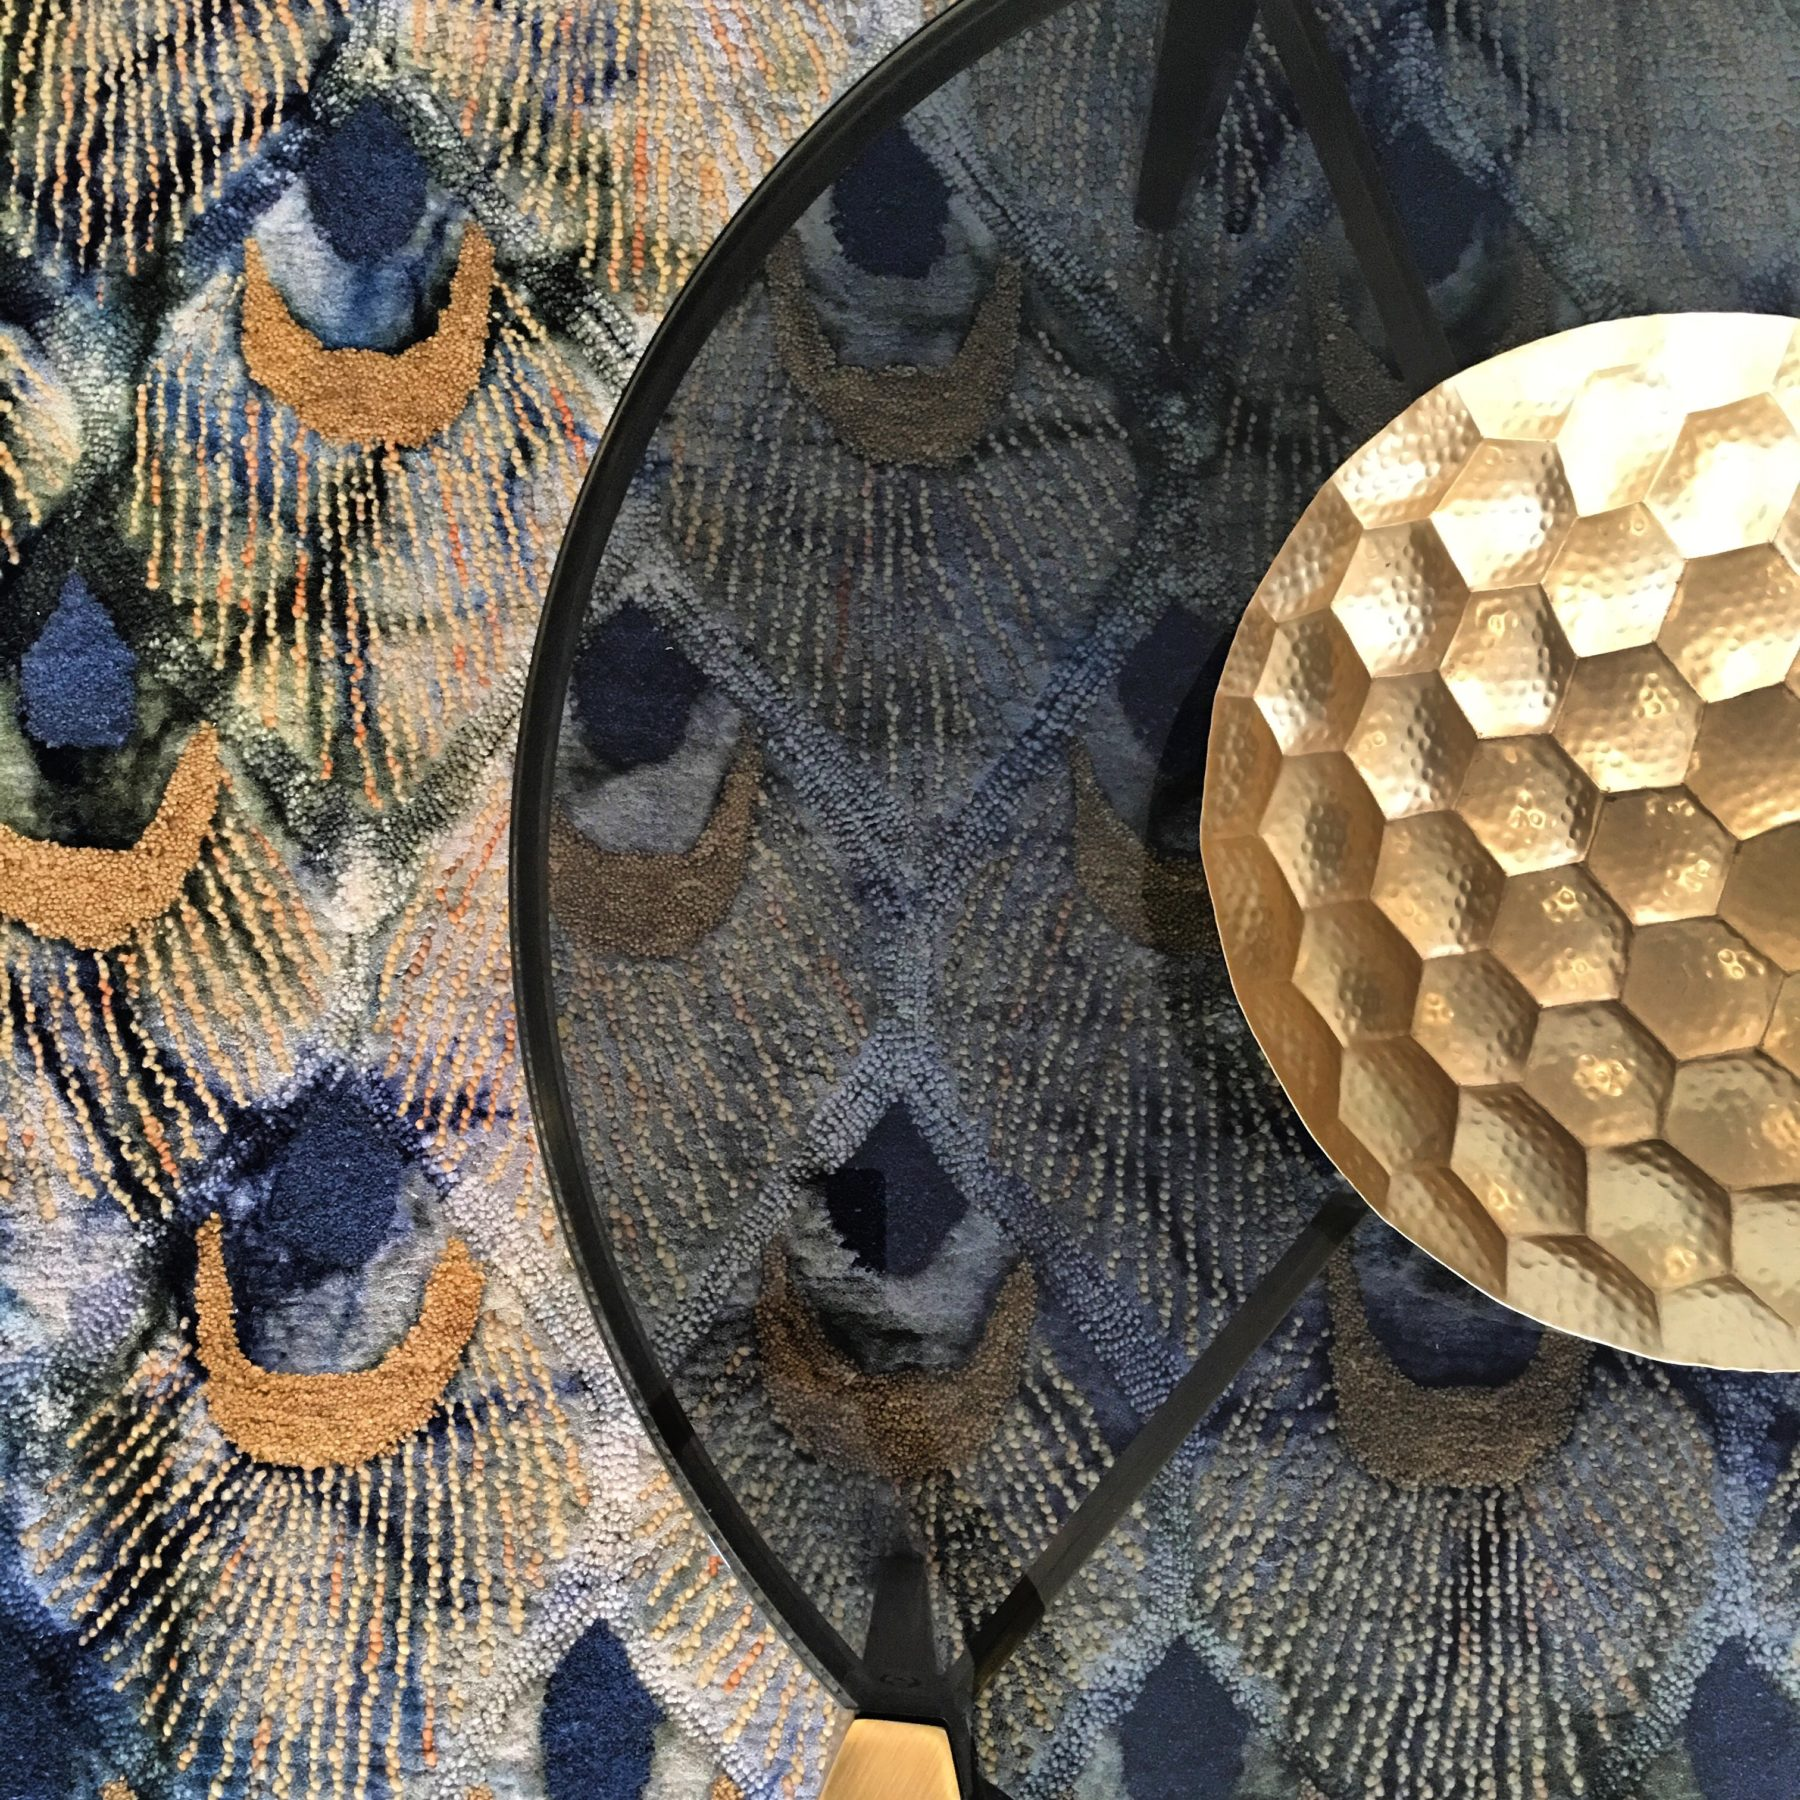 birds eye view of peacock rug with glass coffee table and gold bowl